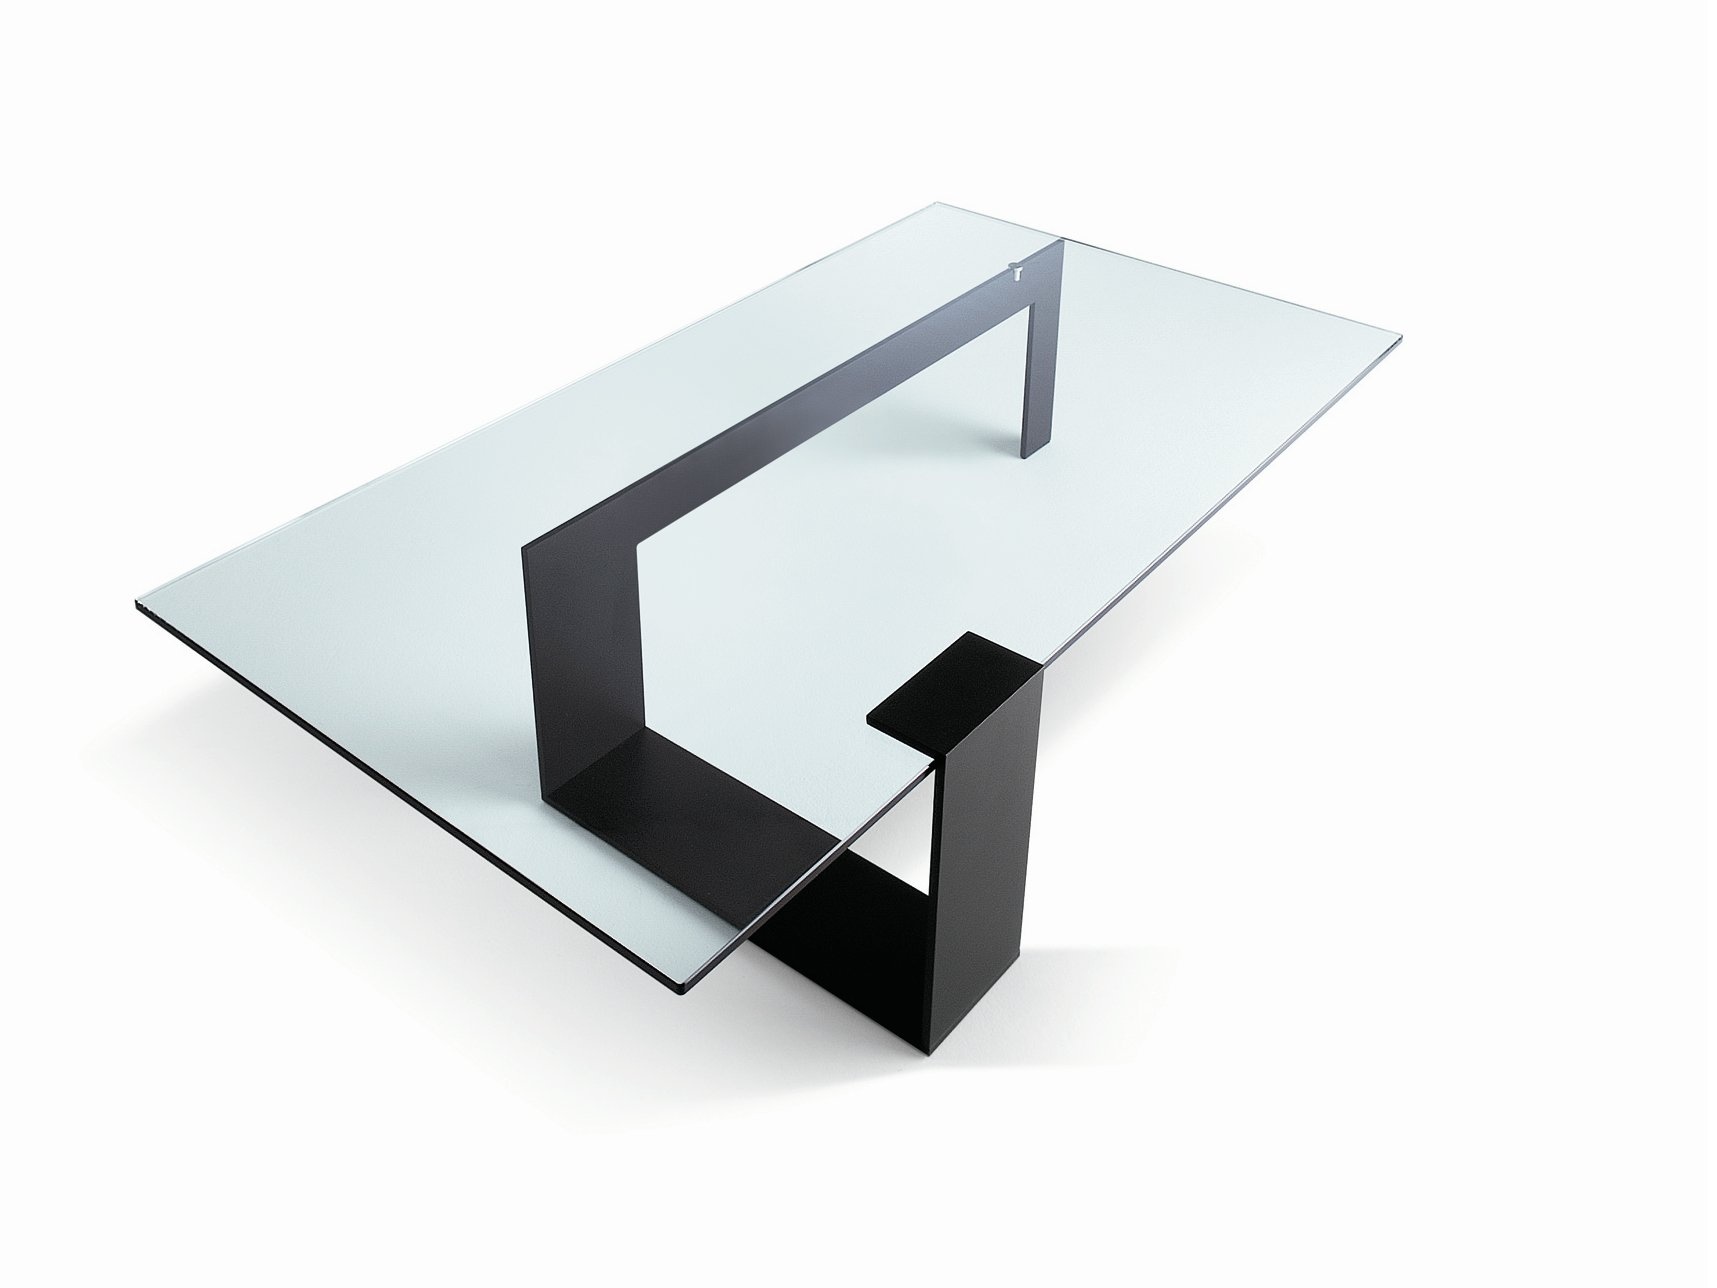 Table basse en verre plinsky by t d tonelli design design giulio mancini - Customiser table en verre ...